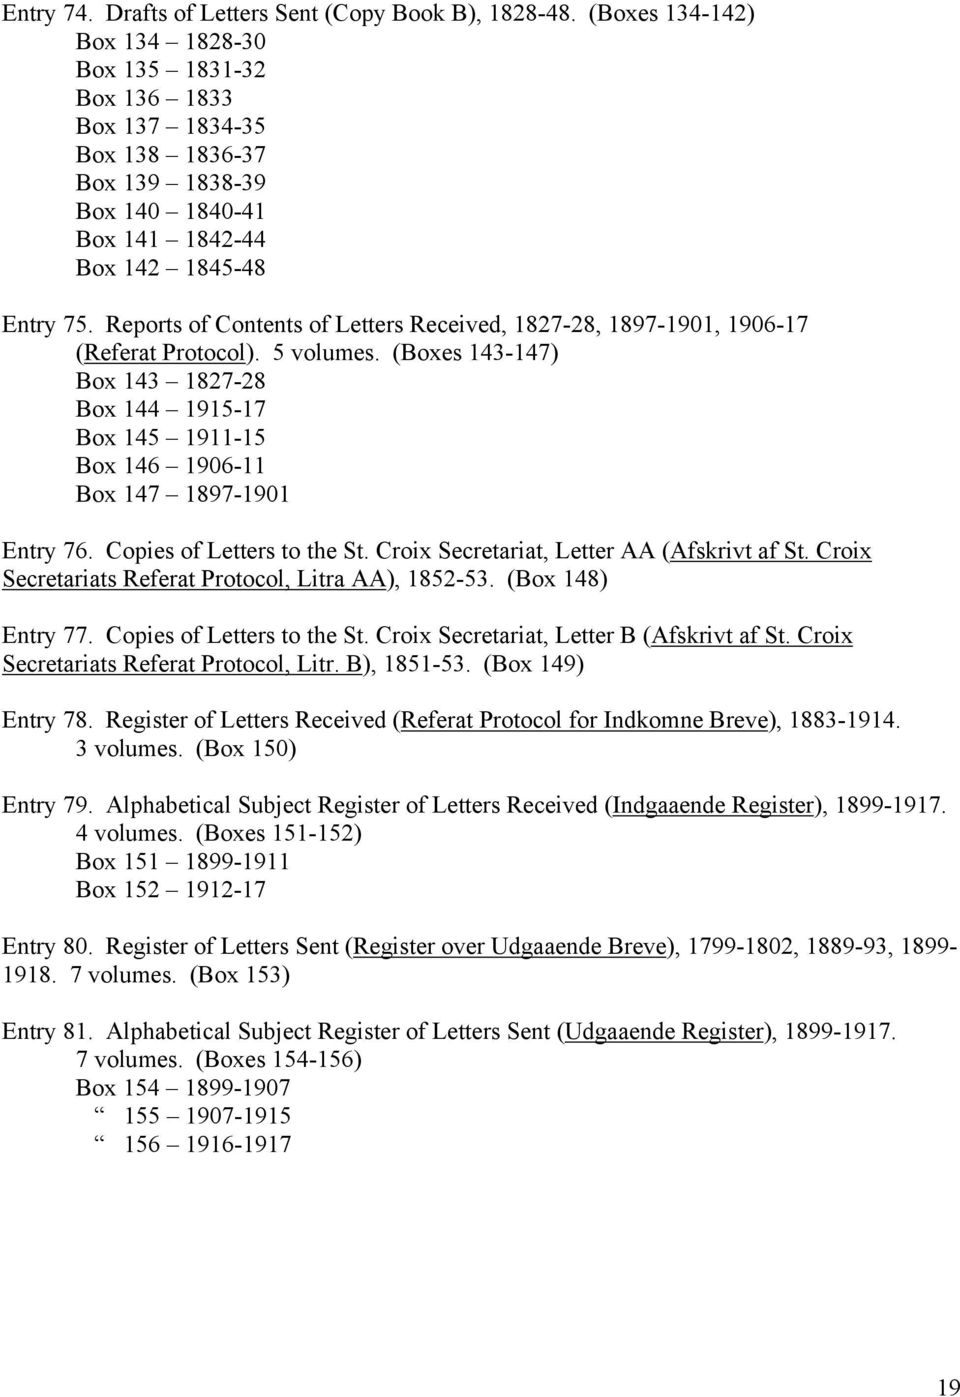 Reports of Contents of Letters Received, 1827-28, 1897-1901, 1906-17 (Referat Protocol). 5 volumes.